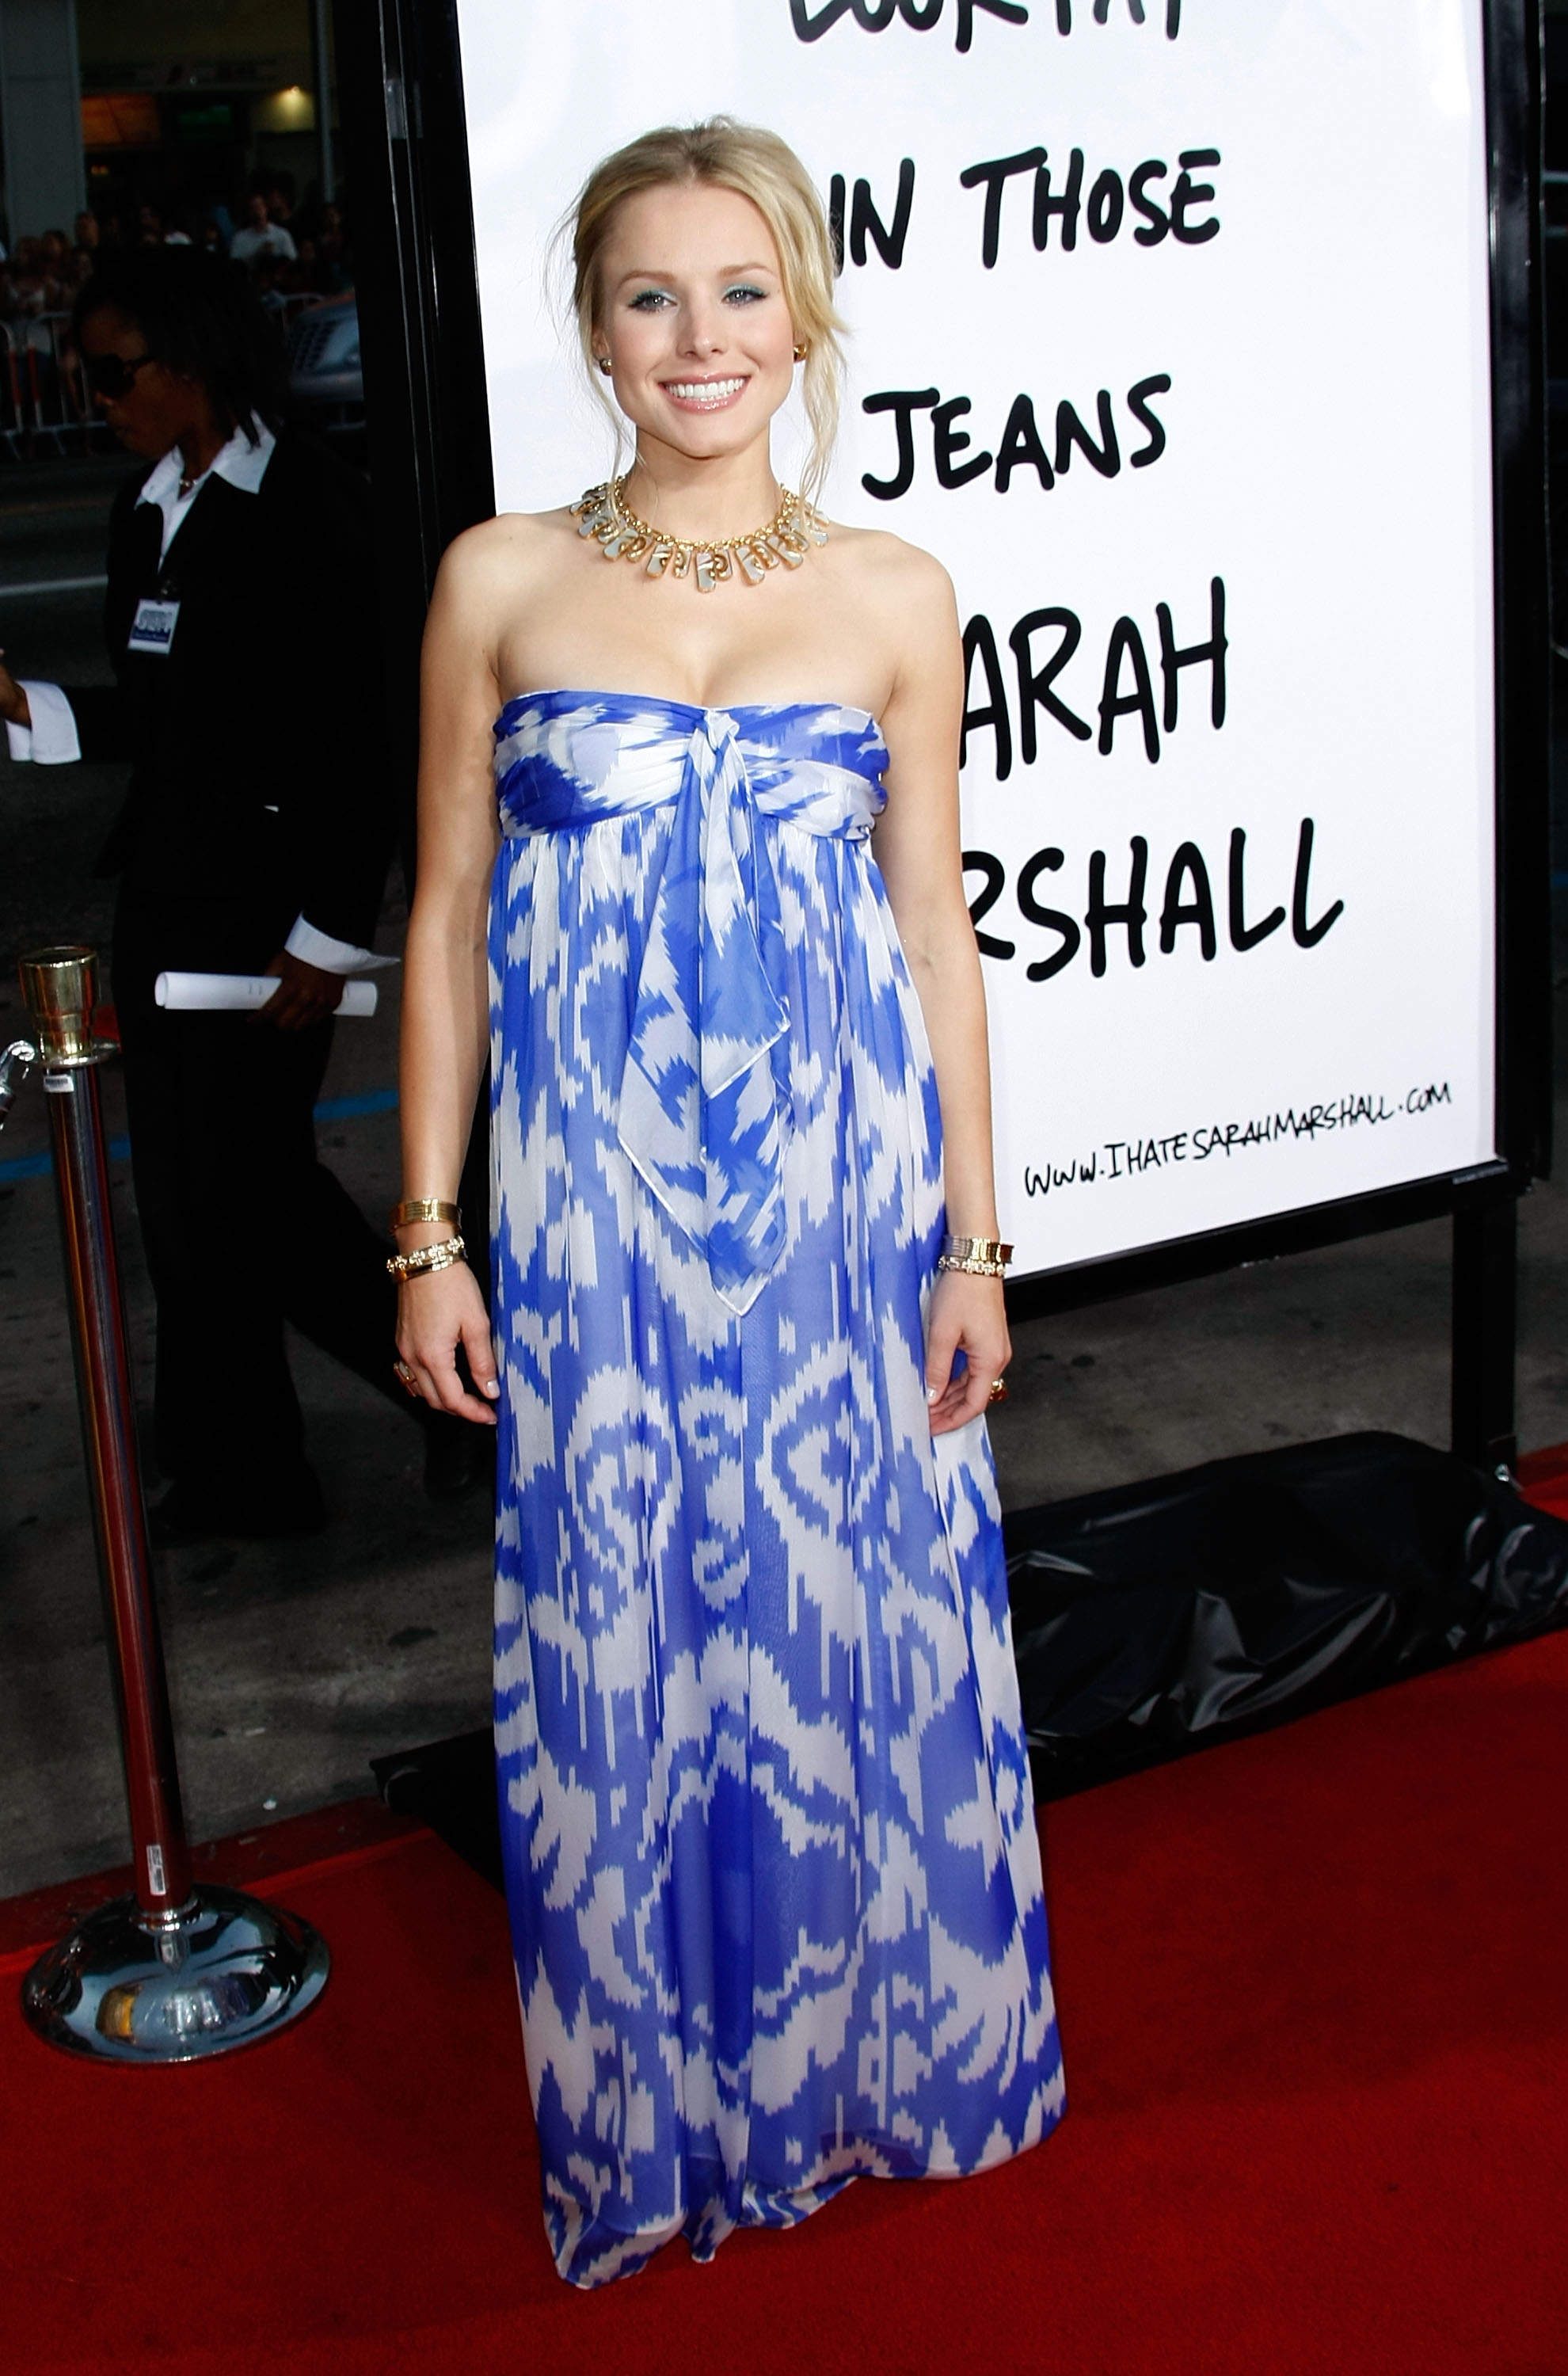 95047_Kristen_Bell-Forgetting_Sarah_Marshall_premiere_in_Hollywood_988_122_1149lo.jpg